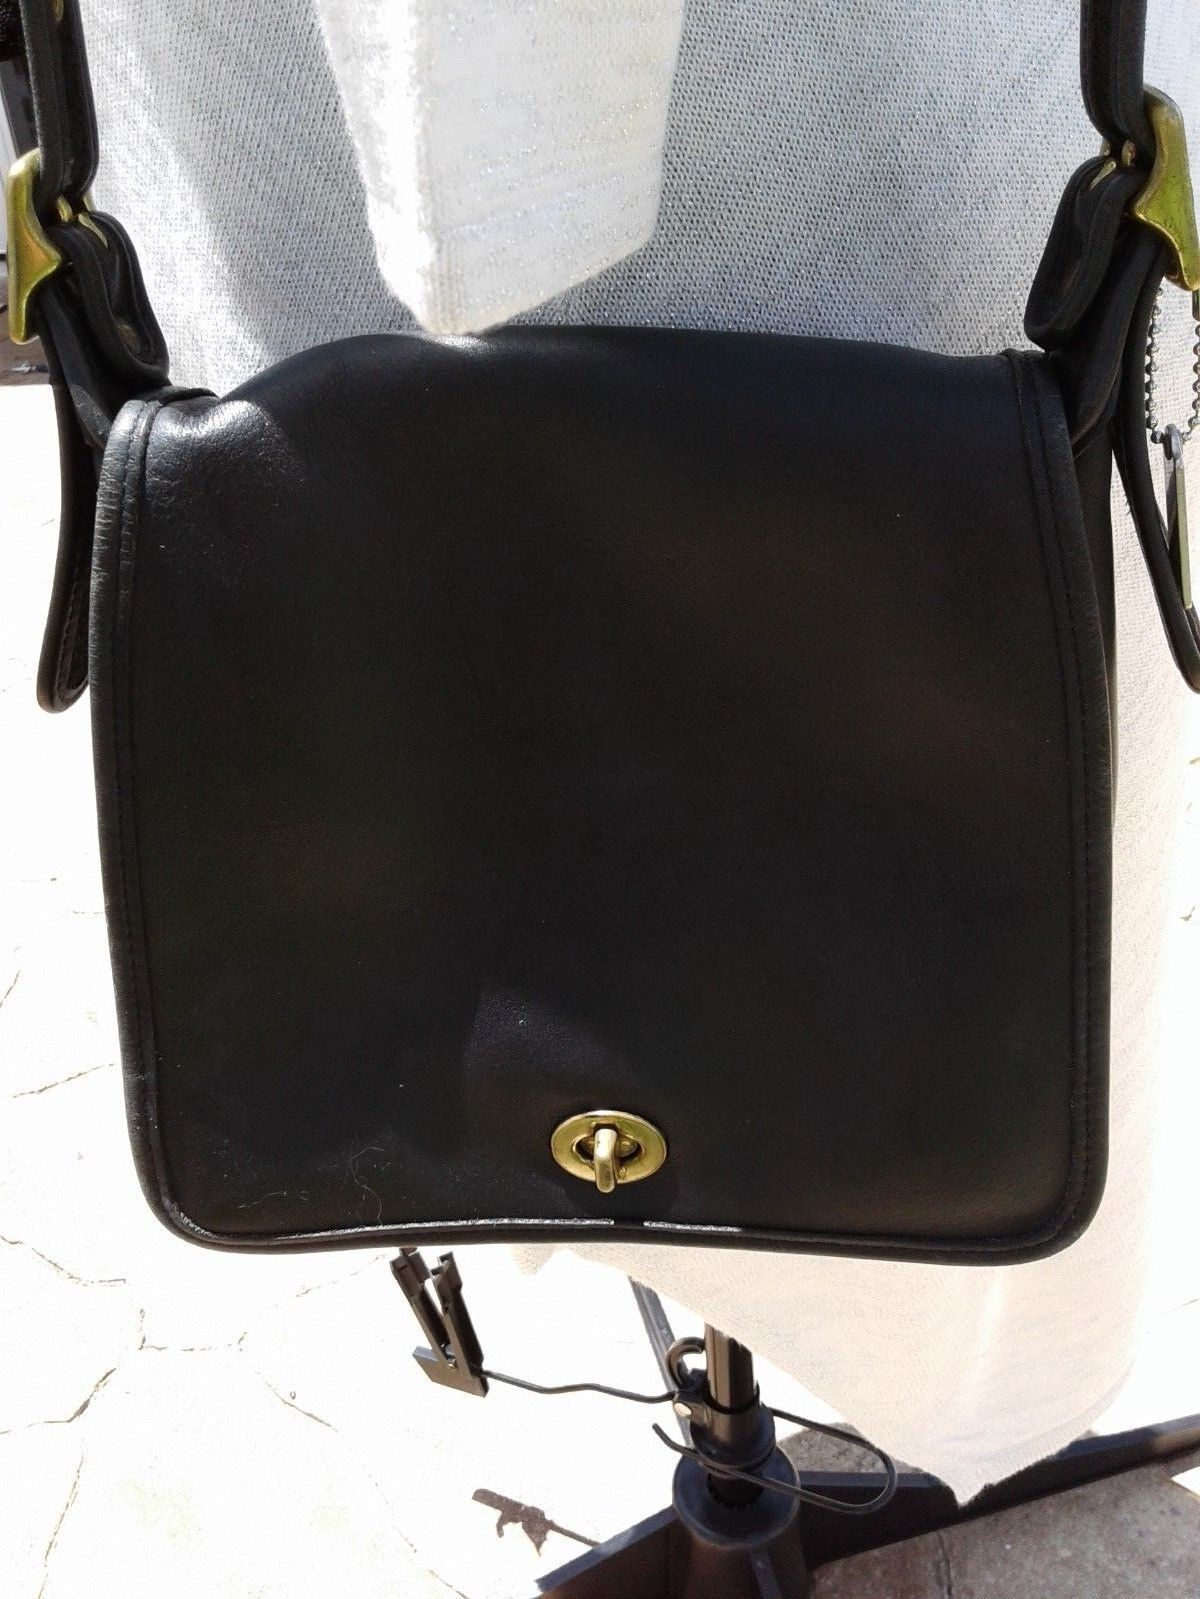 Vintage Coach Black Leather Cross Body Bag Made In The Usa Ebay